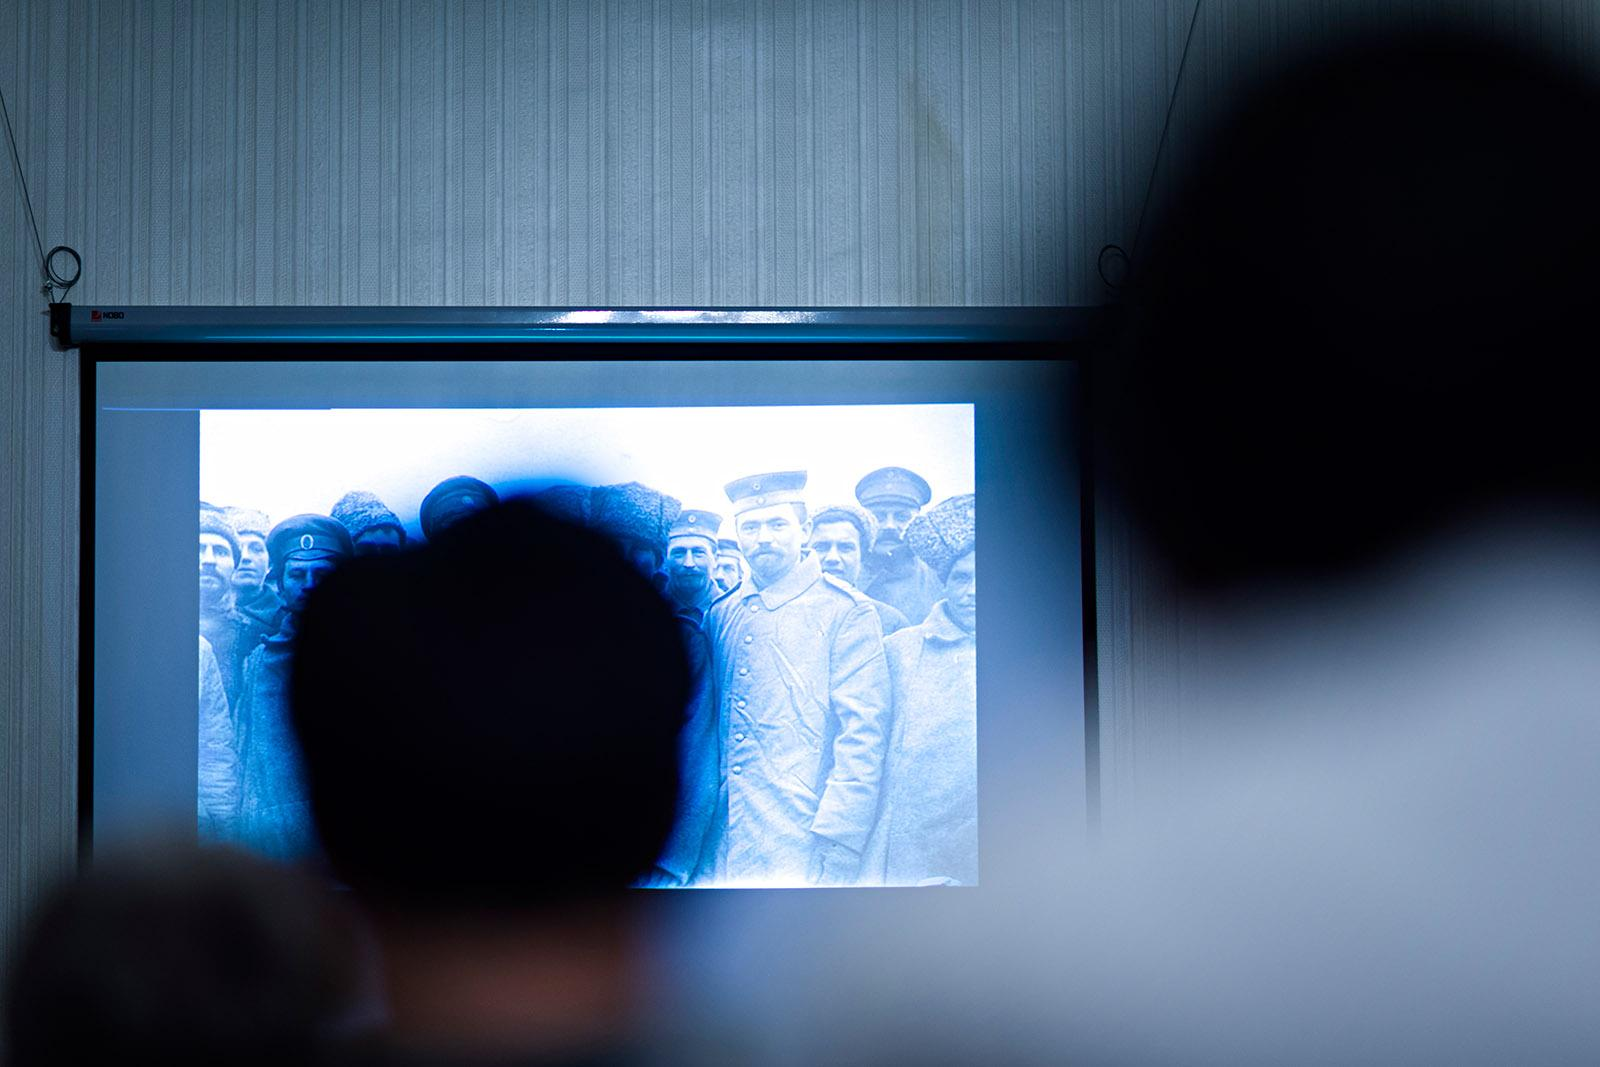 Hochschild showed photos and footage from the pre-war era and propaganda films during his talk at CEU. Photo: CEU/Daniel Vegel.